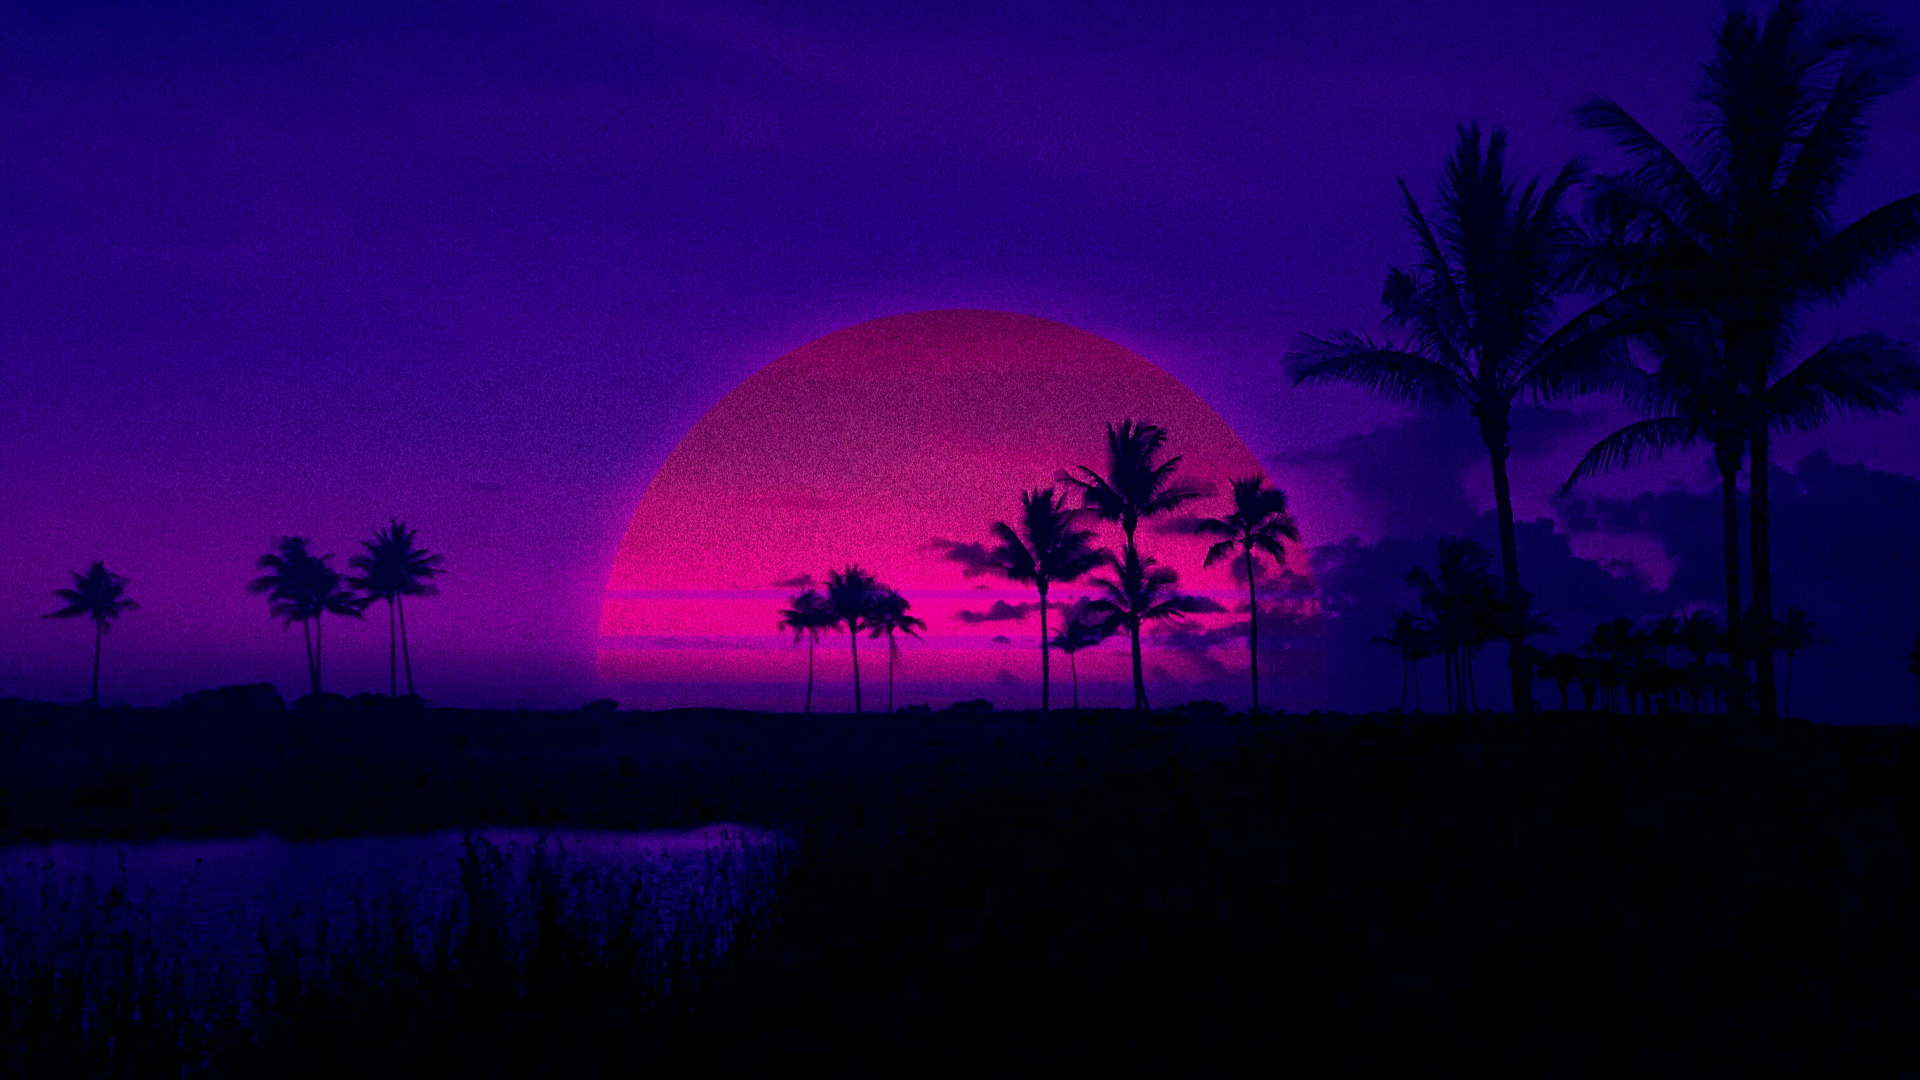 Free Download Palm Trees Retrowave Retrowave Purple Sunset Hd Wallpaper 3024x1701 For Your Desktop Mobile Tablet Explore 47 Retrowave Wallpapers Retrowave Wallpapers